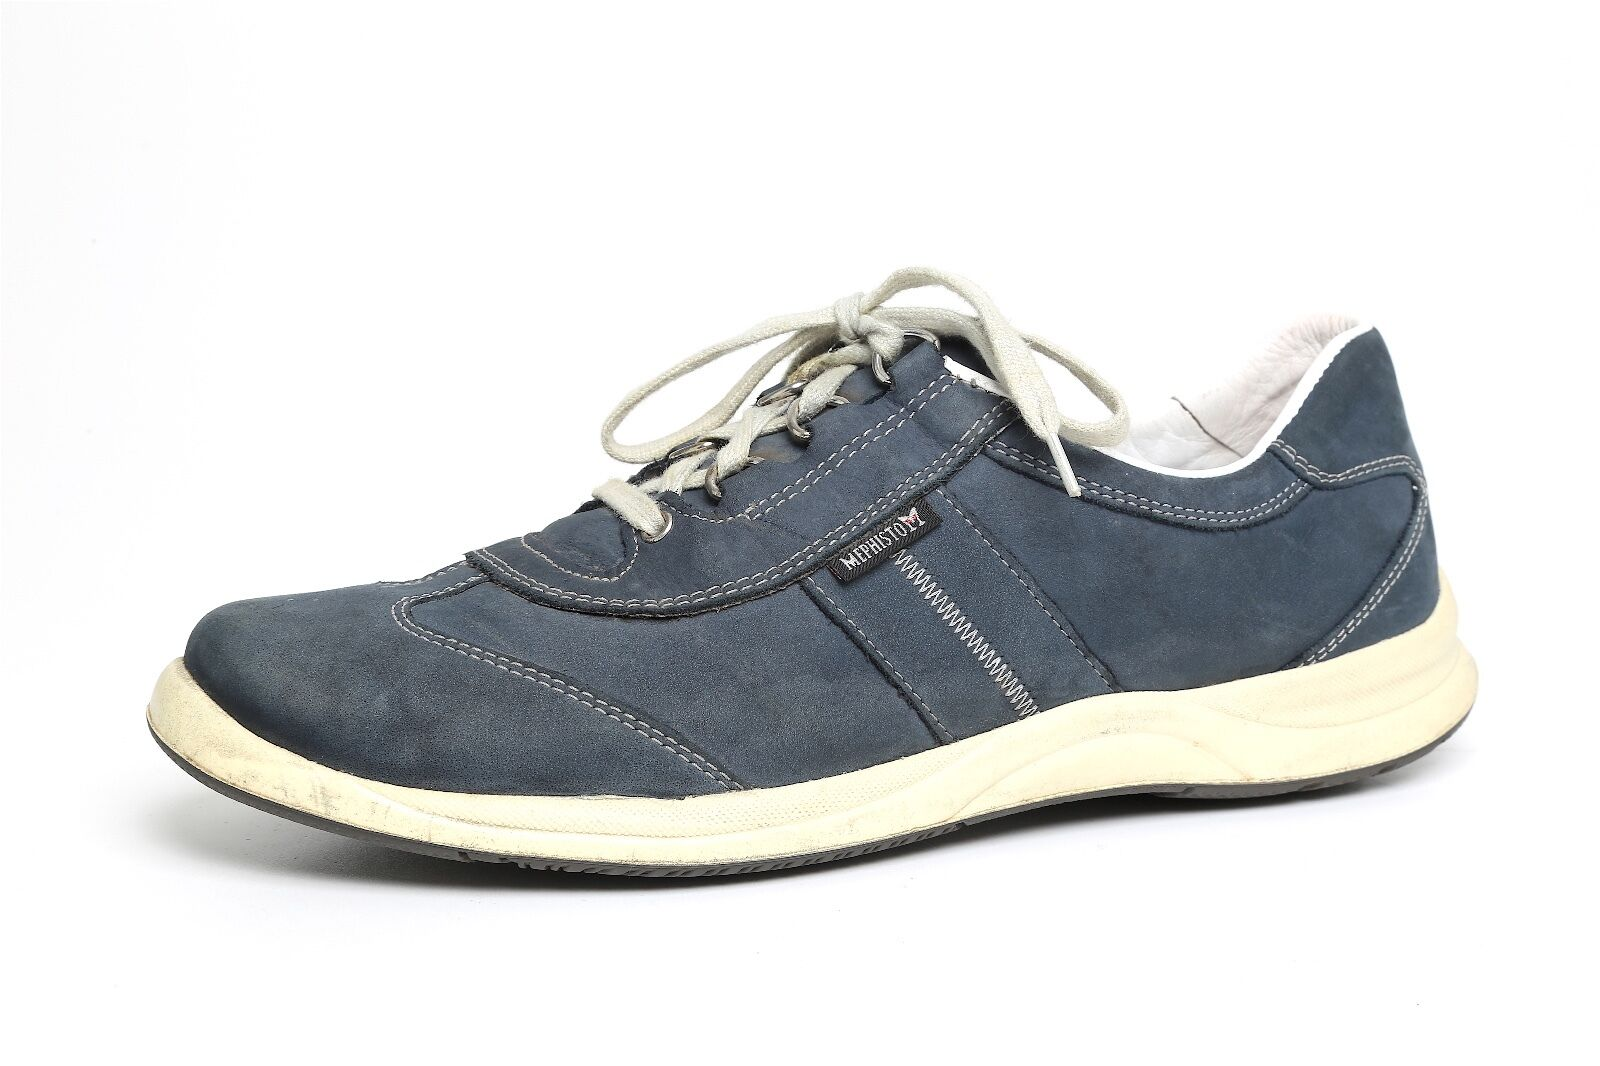 Mephisto Women's Navy bluee Laser Smooth Leather Sneakers 2220 Sz 9.5 US 7 EUR